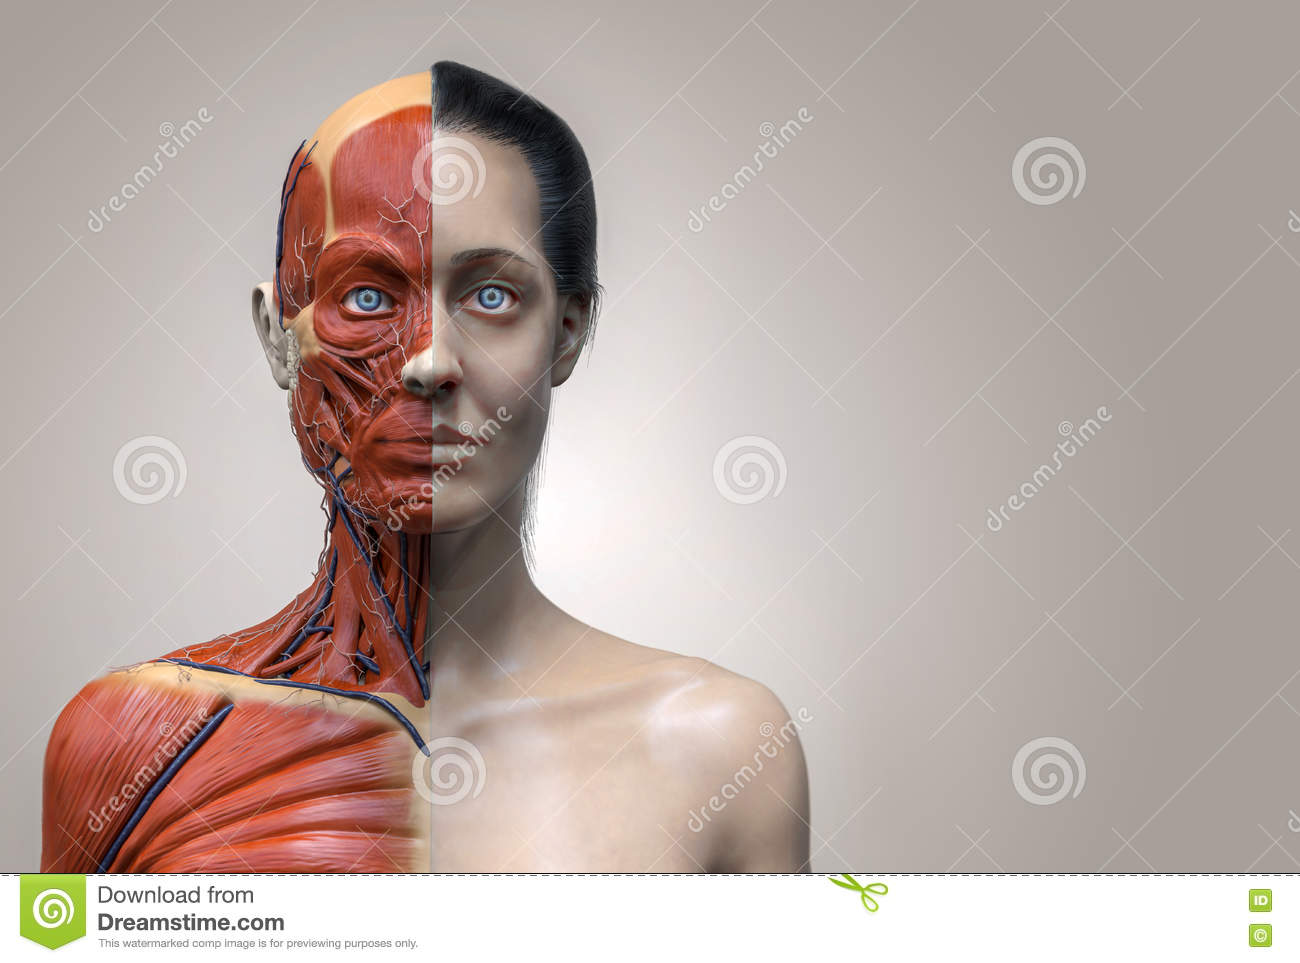 Human Body Anatomy Of Woman Stock Illustration - Illustration of ...